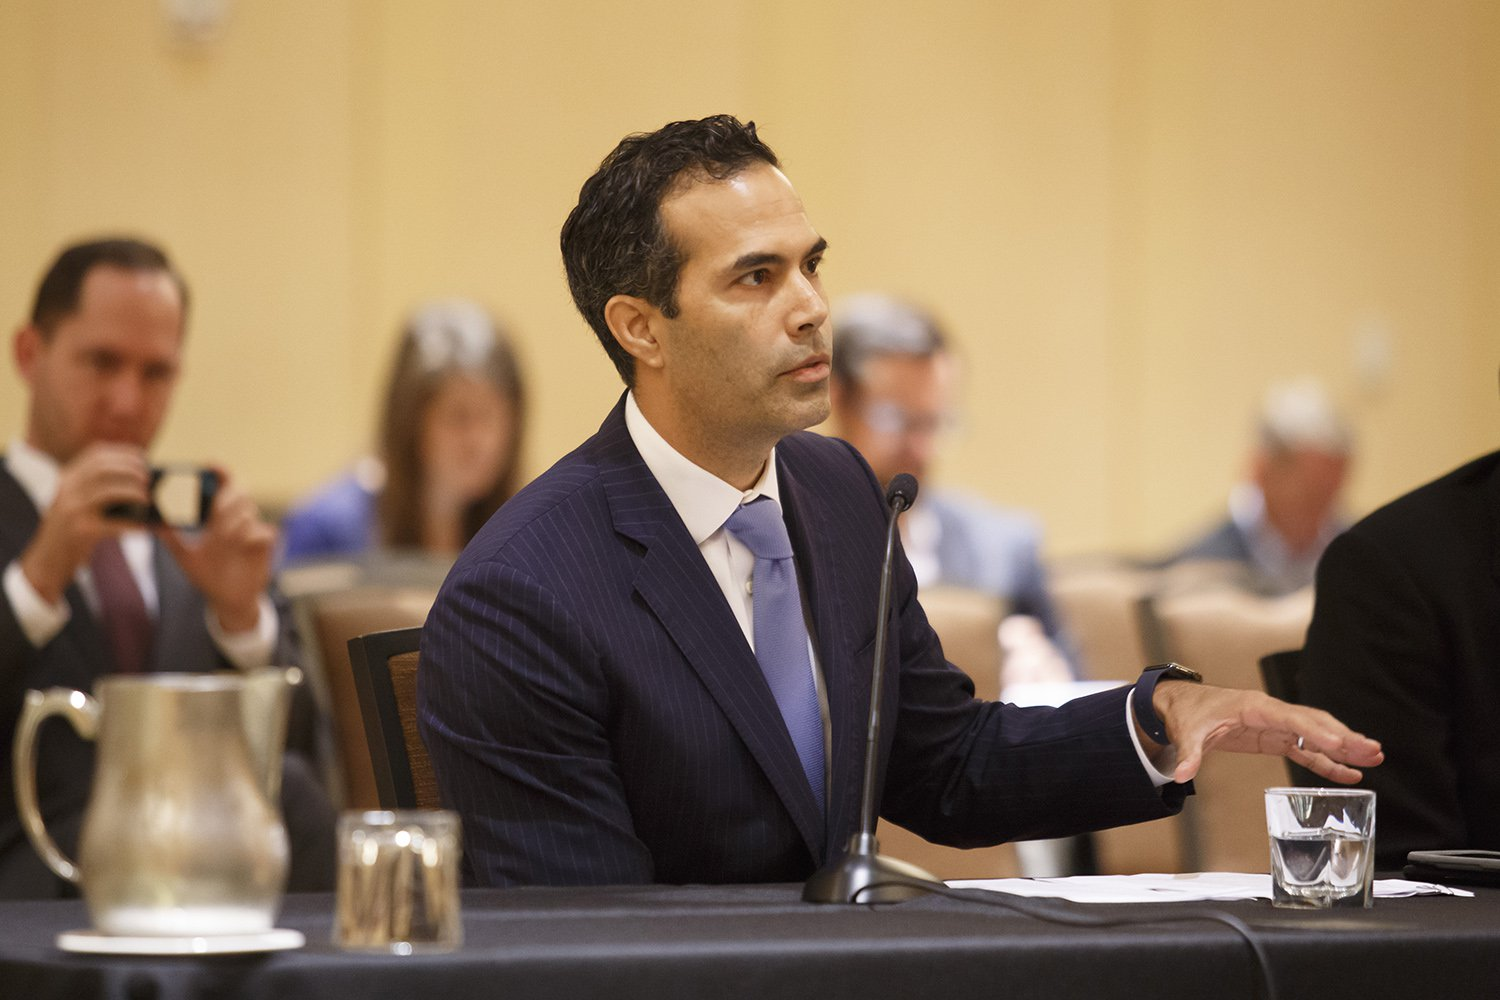 Texas Land Commissioner George P. Bush speaks to the Texas House Urban Affairs Committee during a special Houston meeting on Hurricane Harvey in October 2017. Michael Stravato for The Texas Tribune